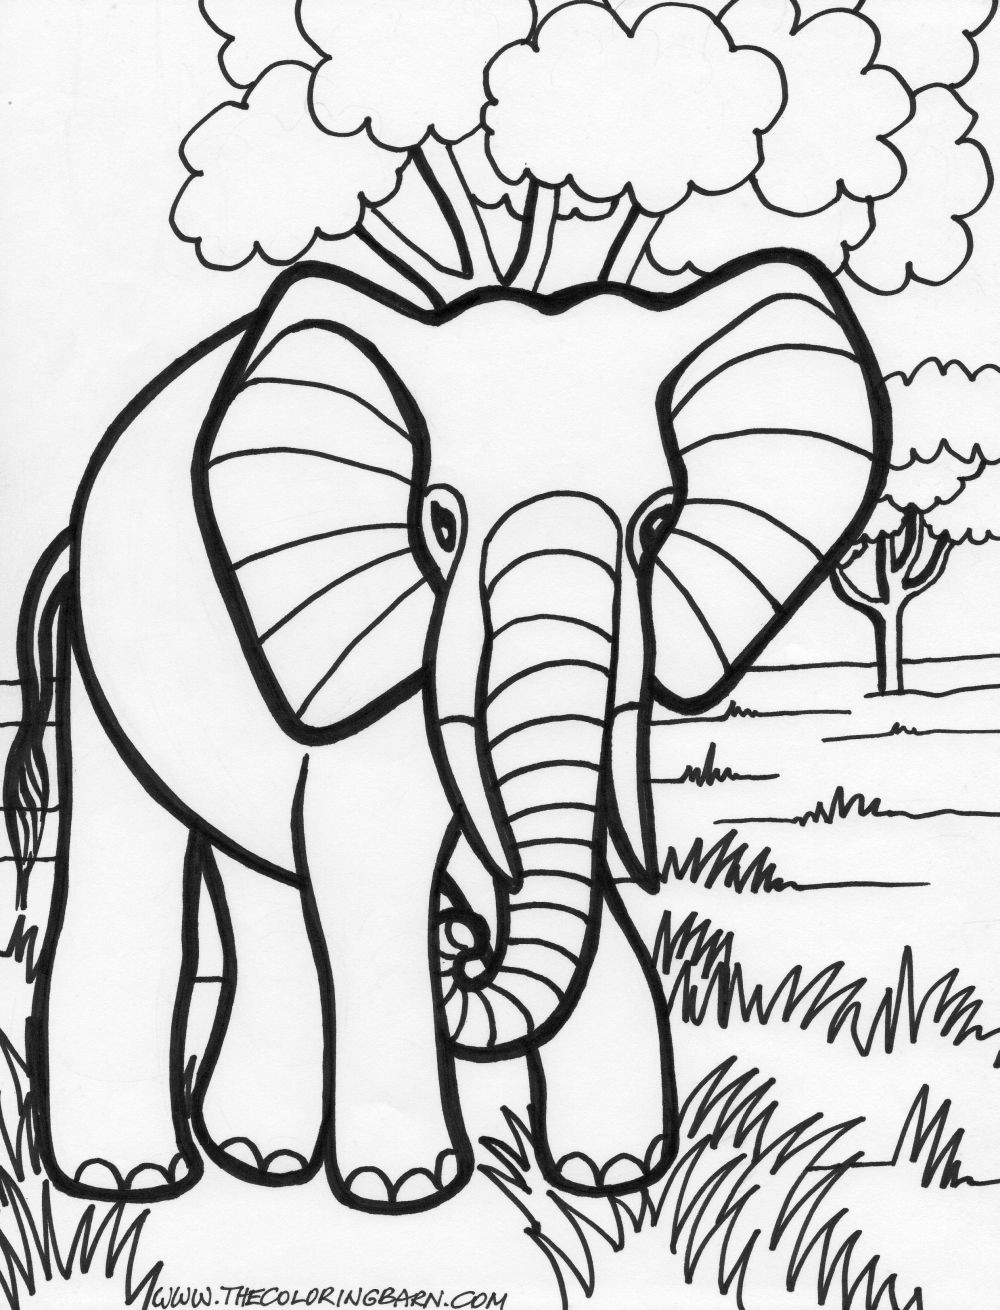 Coloring Pages For Toddler  transmissionpress 14 Elephant Coloring Pages for Kids